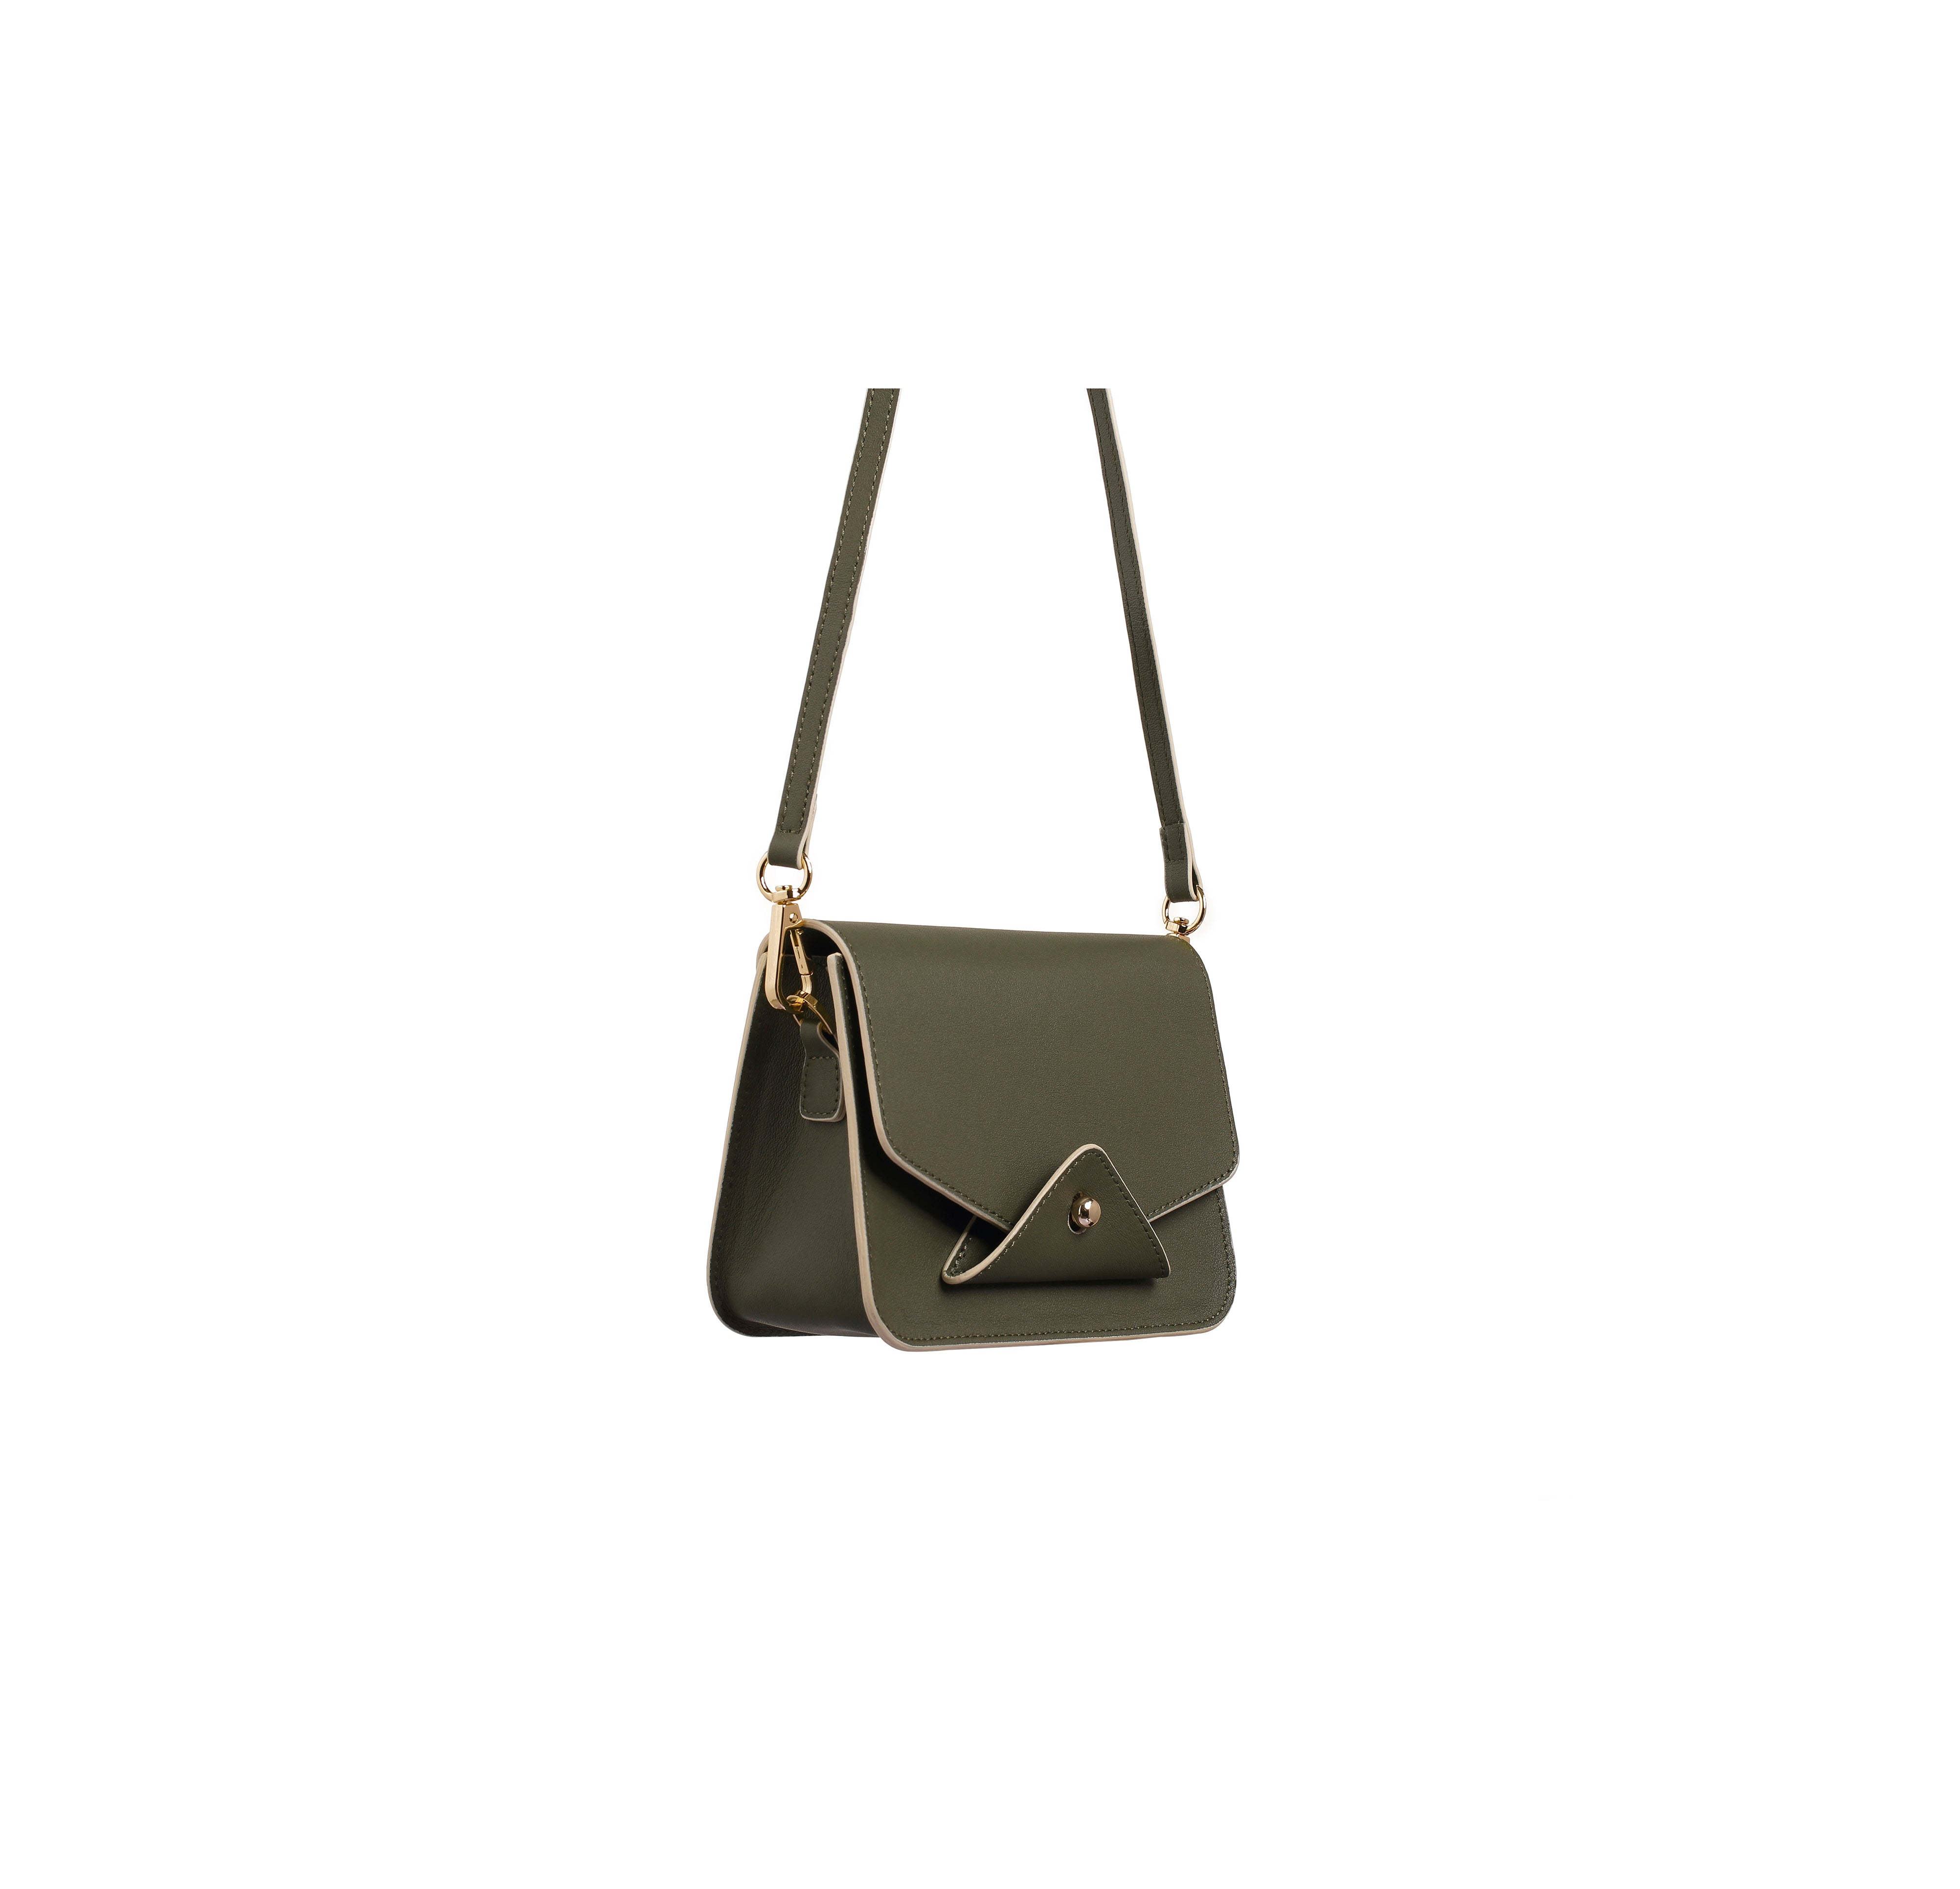 ARIEL Olive Leather Crossbody